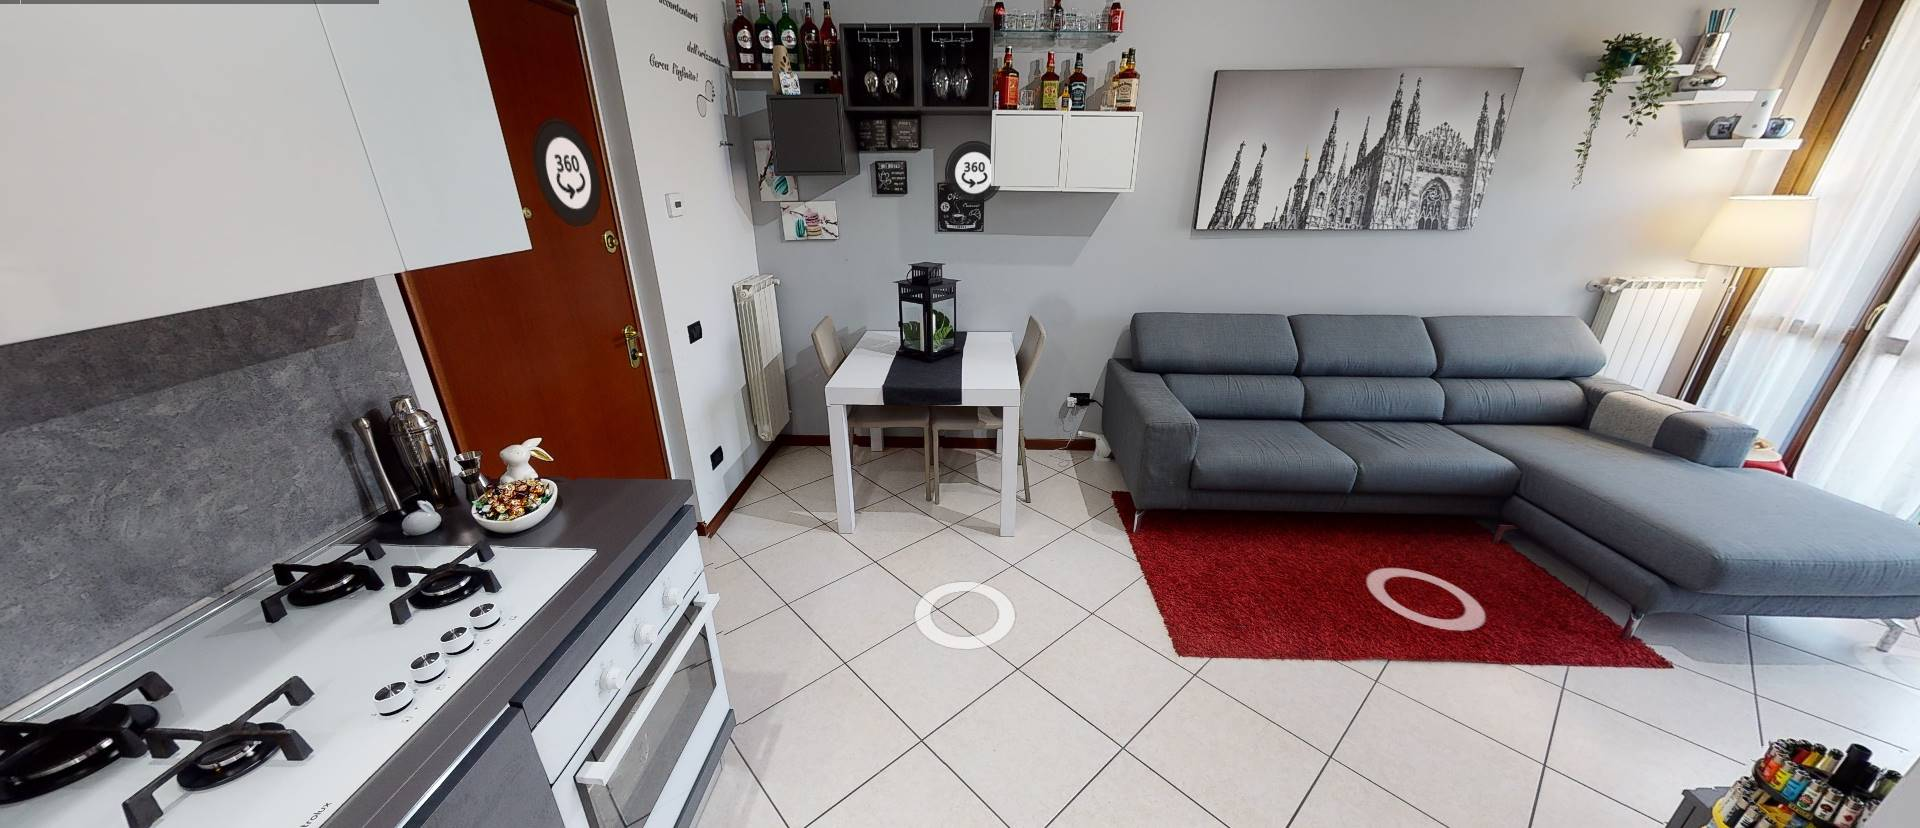 OSIO SOTTO, Apartment for sale of 58 Sq. mt., Excellent Condition, Heating Individual heating system, Energetic class: D, Epi: 99,91 kwh/m2 year,